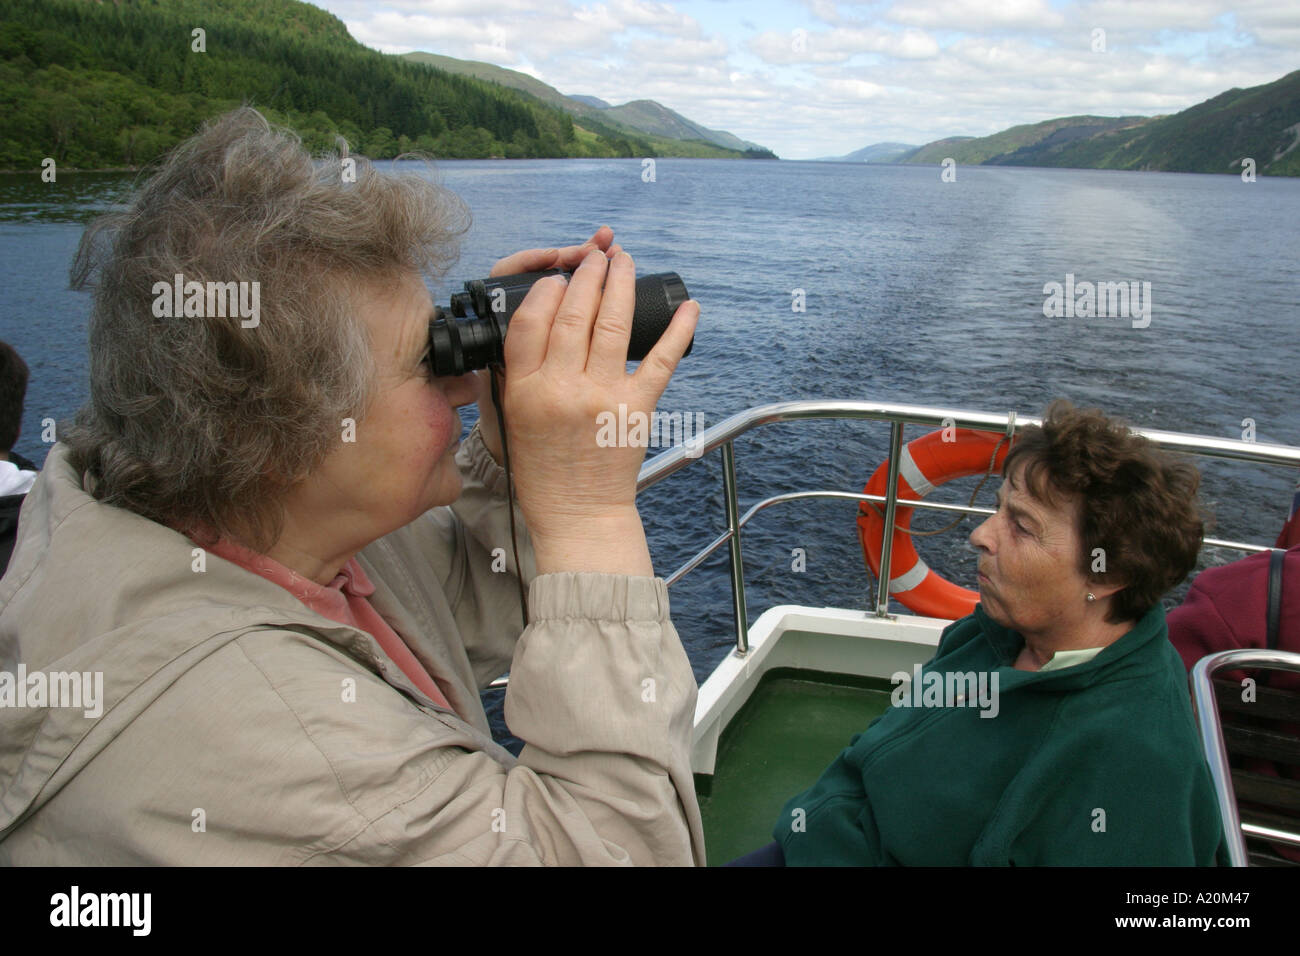 Women sitting on a day trip pleasure cruiser on Loch Ness hoping to see Nessie the Loch Ness Monster, Scotland - Stock Image